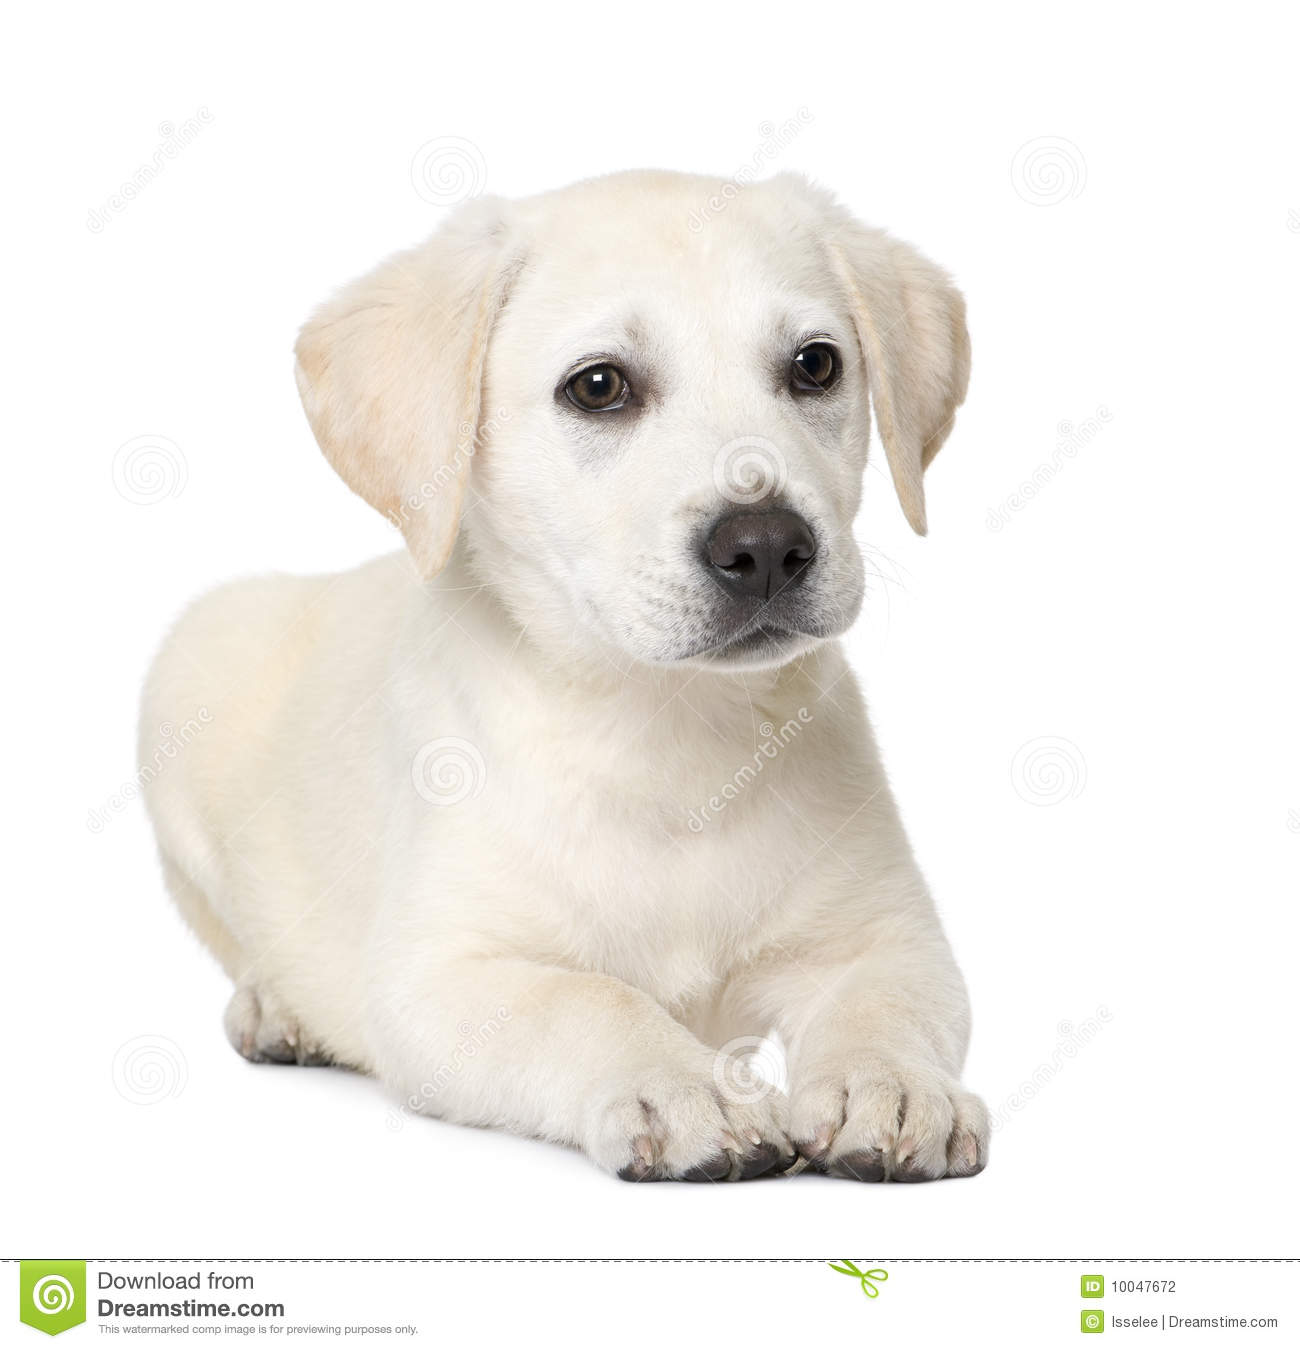 Labrador Puppy 4 Month Old Photos Free Royalty Free Stock Photos From Dreamstime